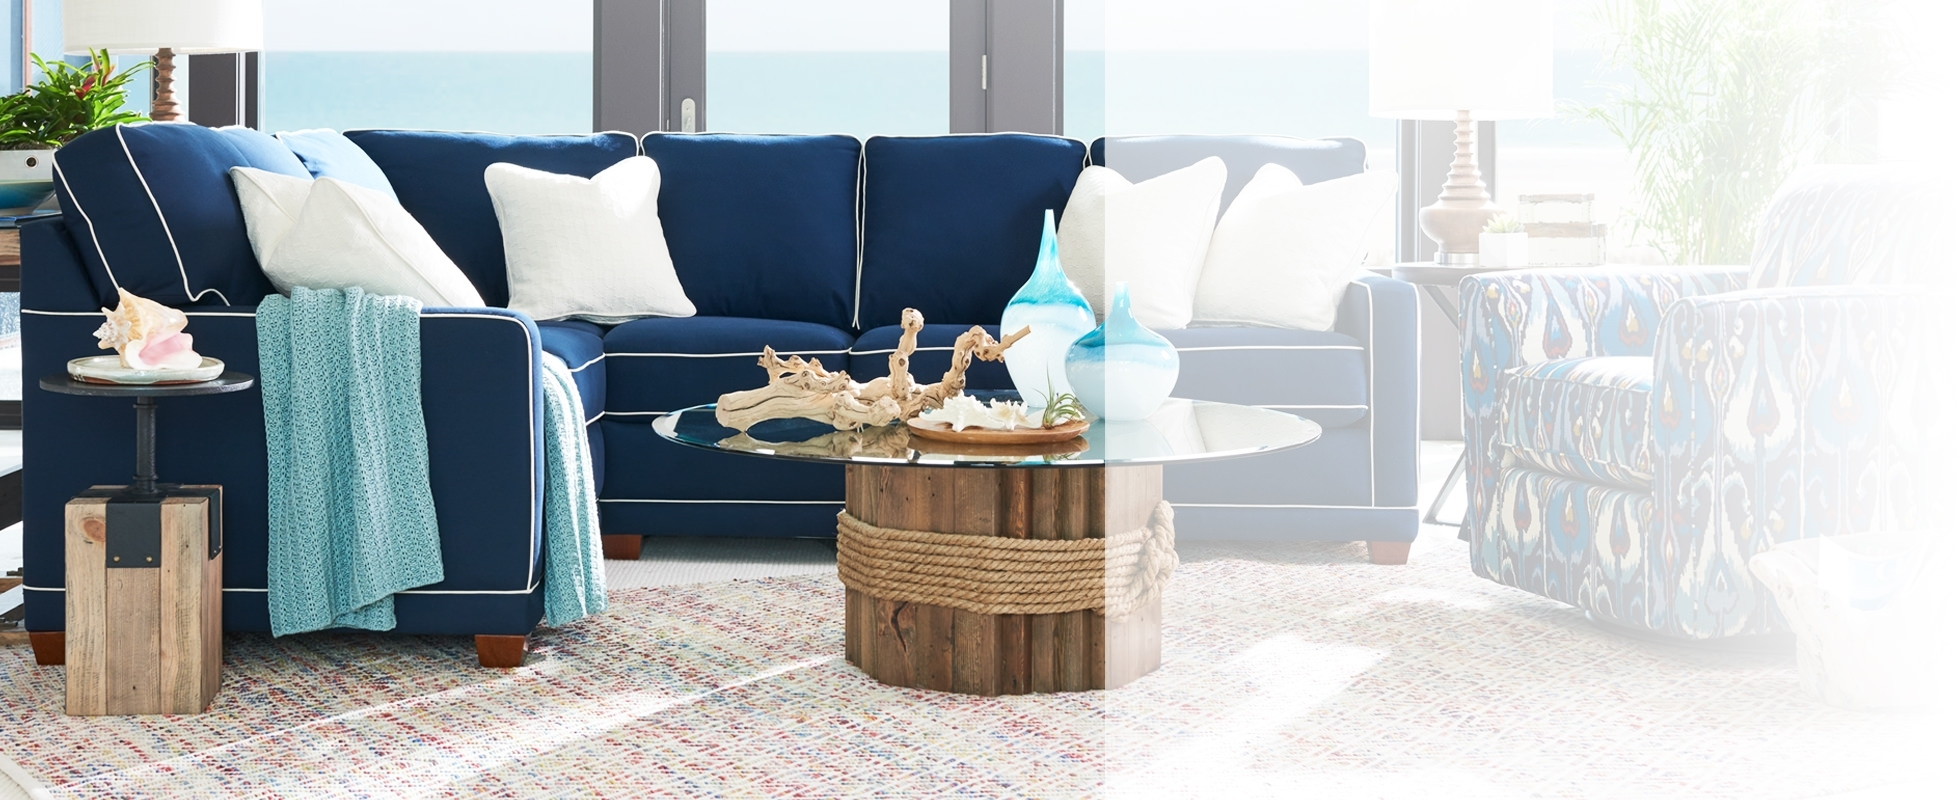 Sectional Sofas & Sectional Couches | La Z Boy Pertaining To Lazy Boy Sectional Sofas (Image 10 of 10)